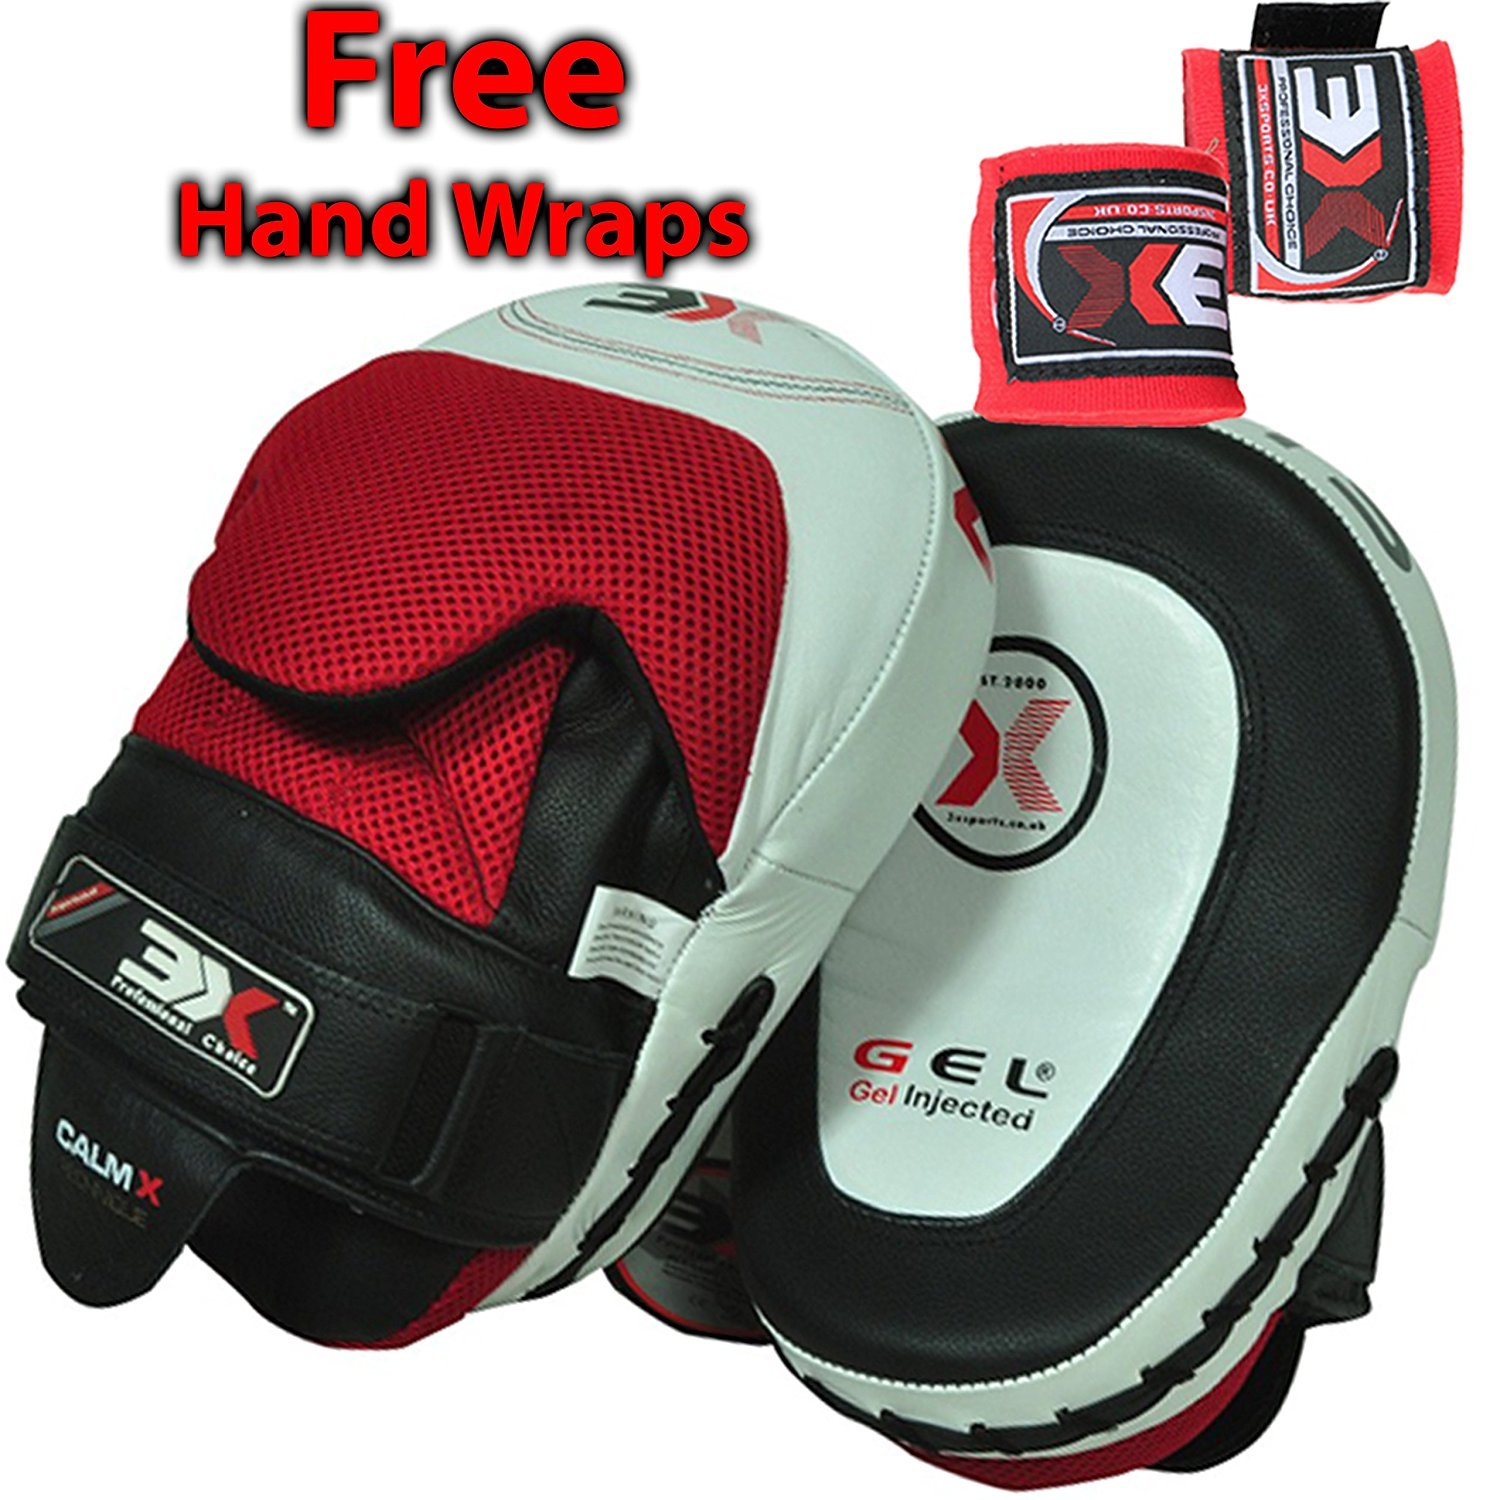 3X Professional Choice Boxing Focus Pads MMA UFC Hook Jab Target Muay Thai Kick Boxing Training Punching Strike Kick Shield 3X Sports